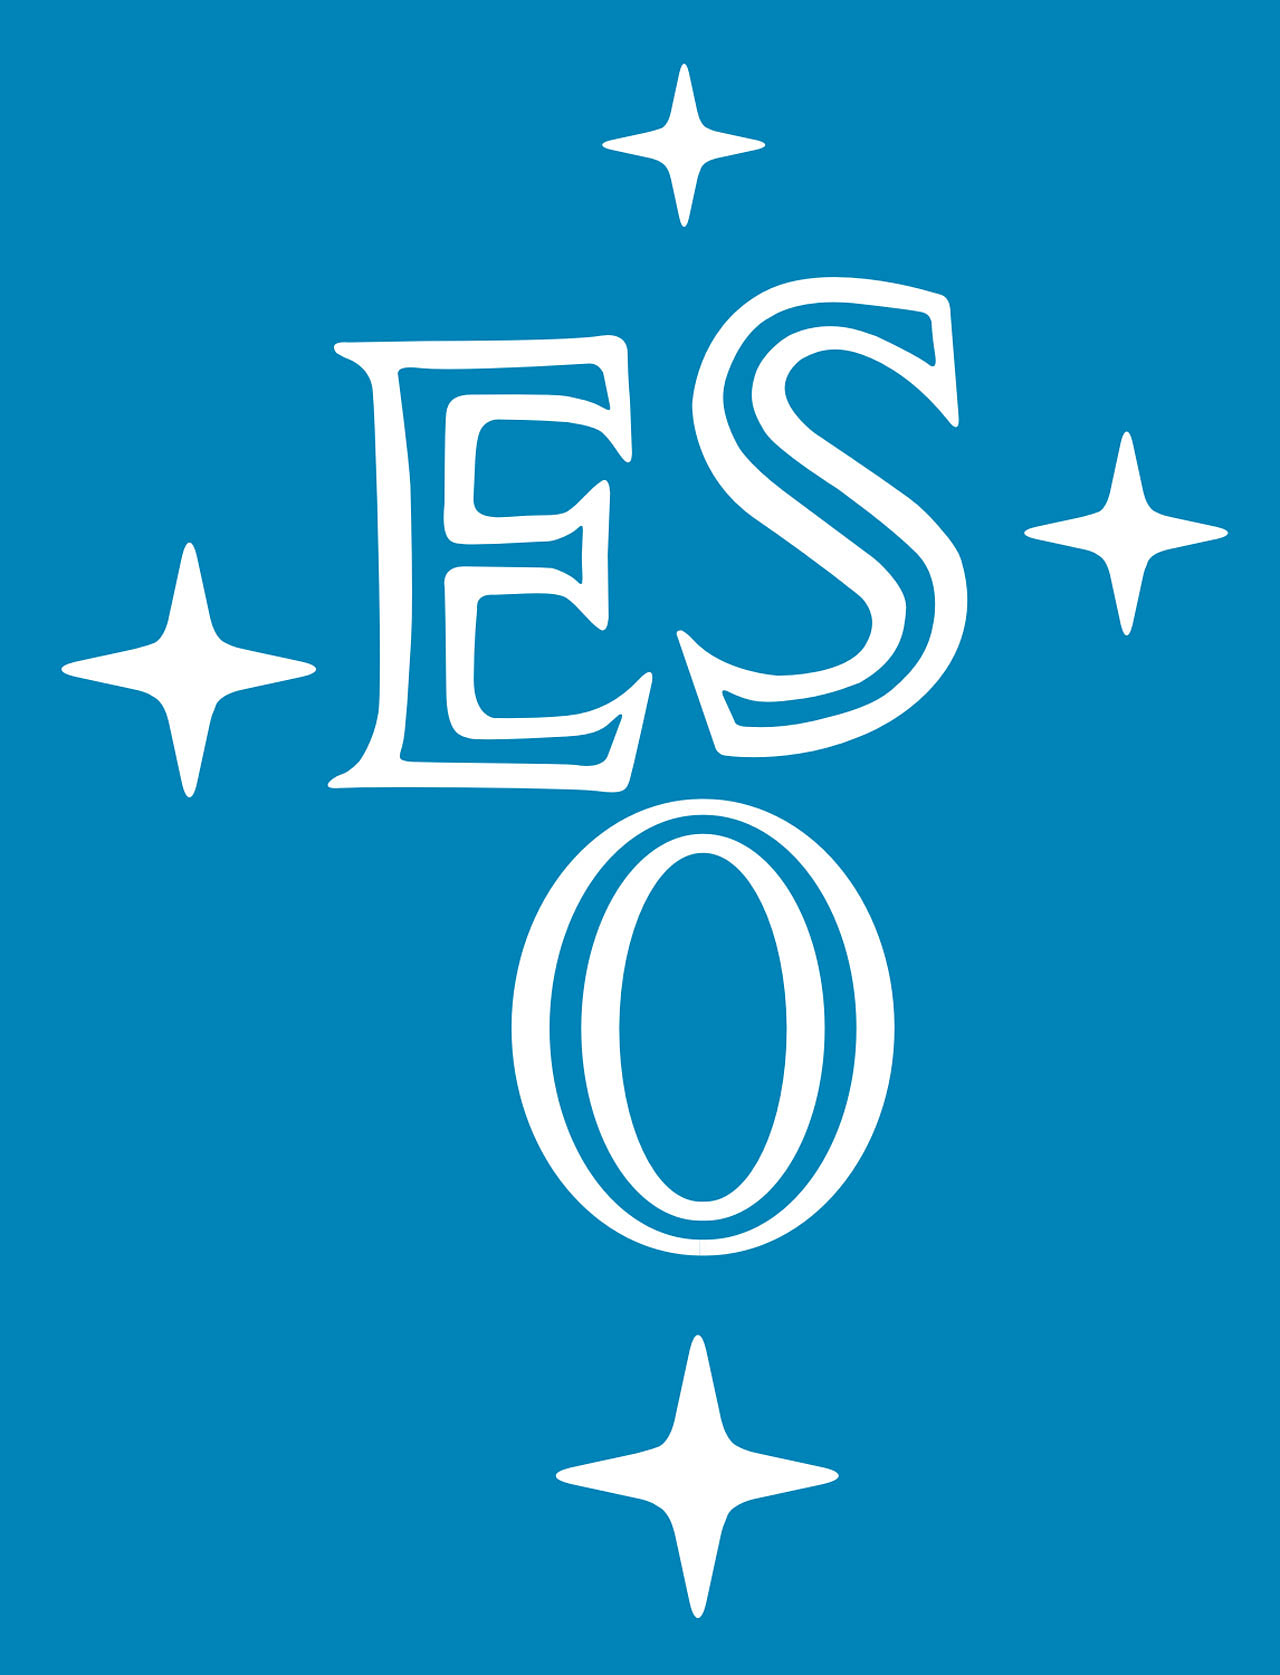 ESO wishes you a Merry Christmas and a Happy New Year! | ESO